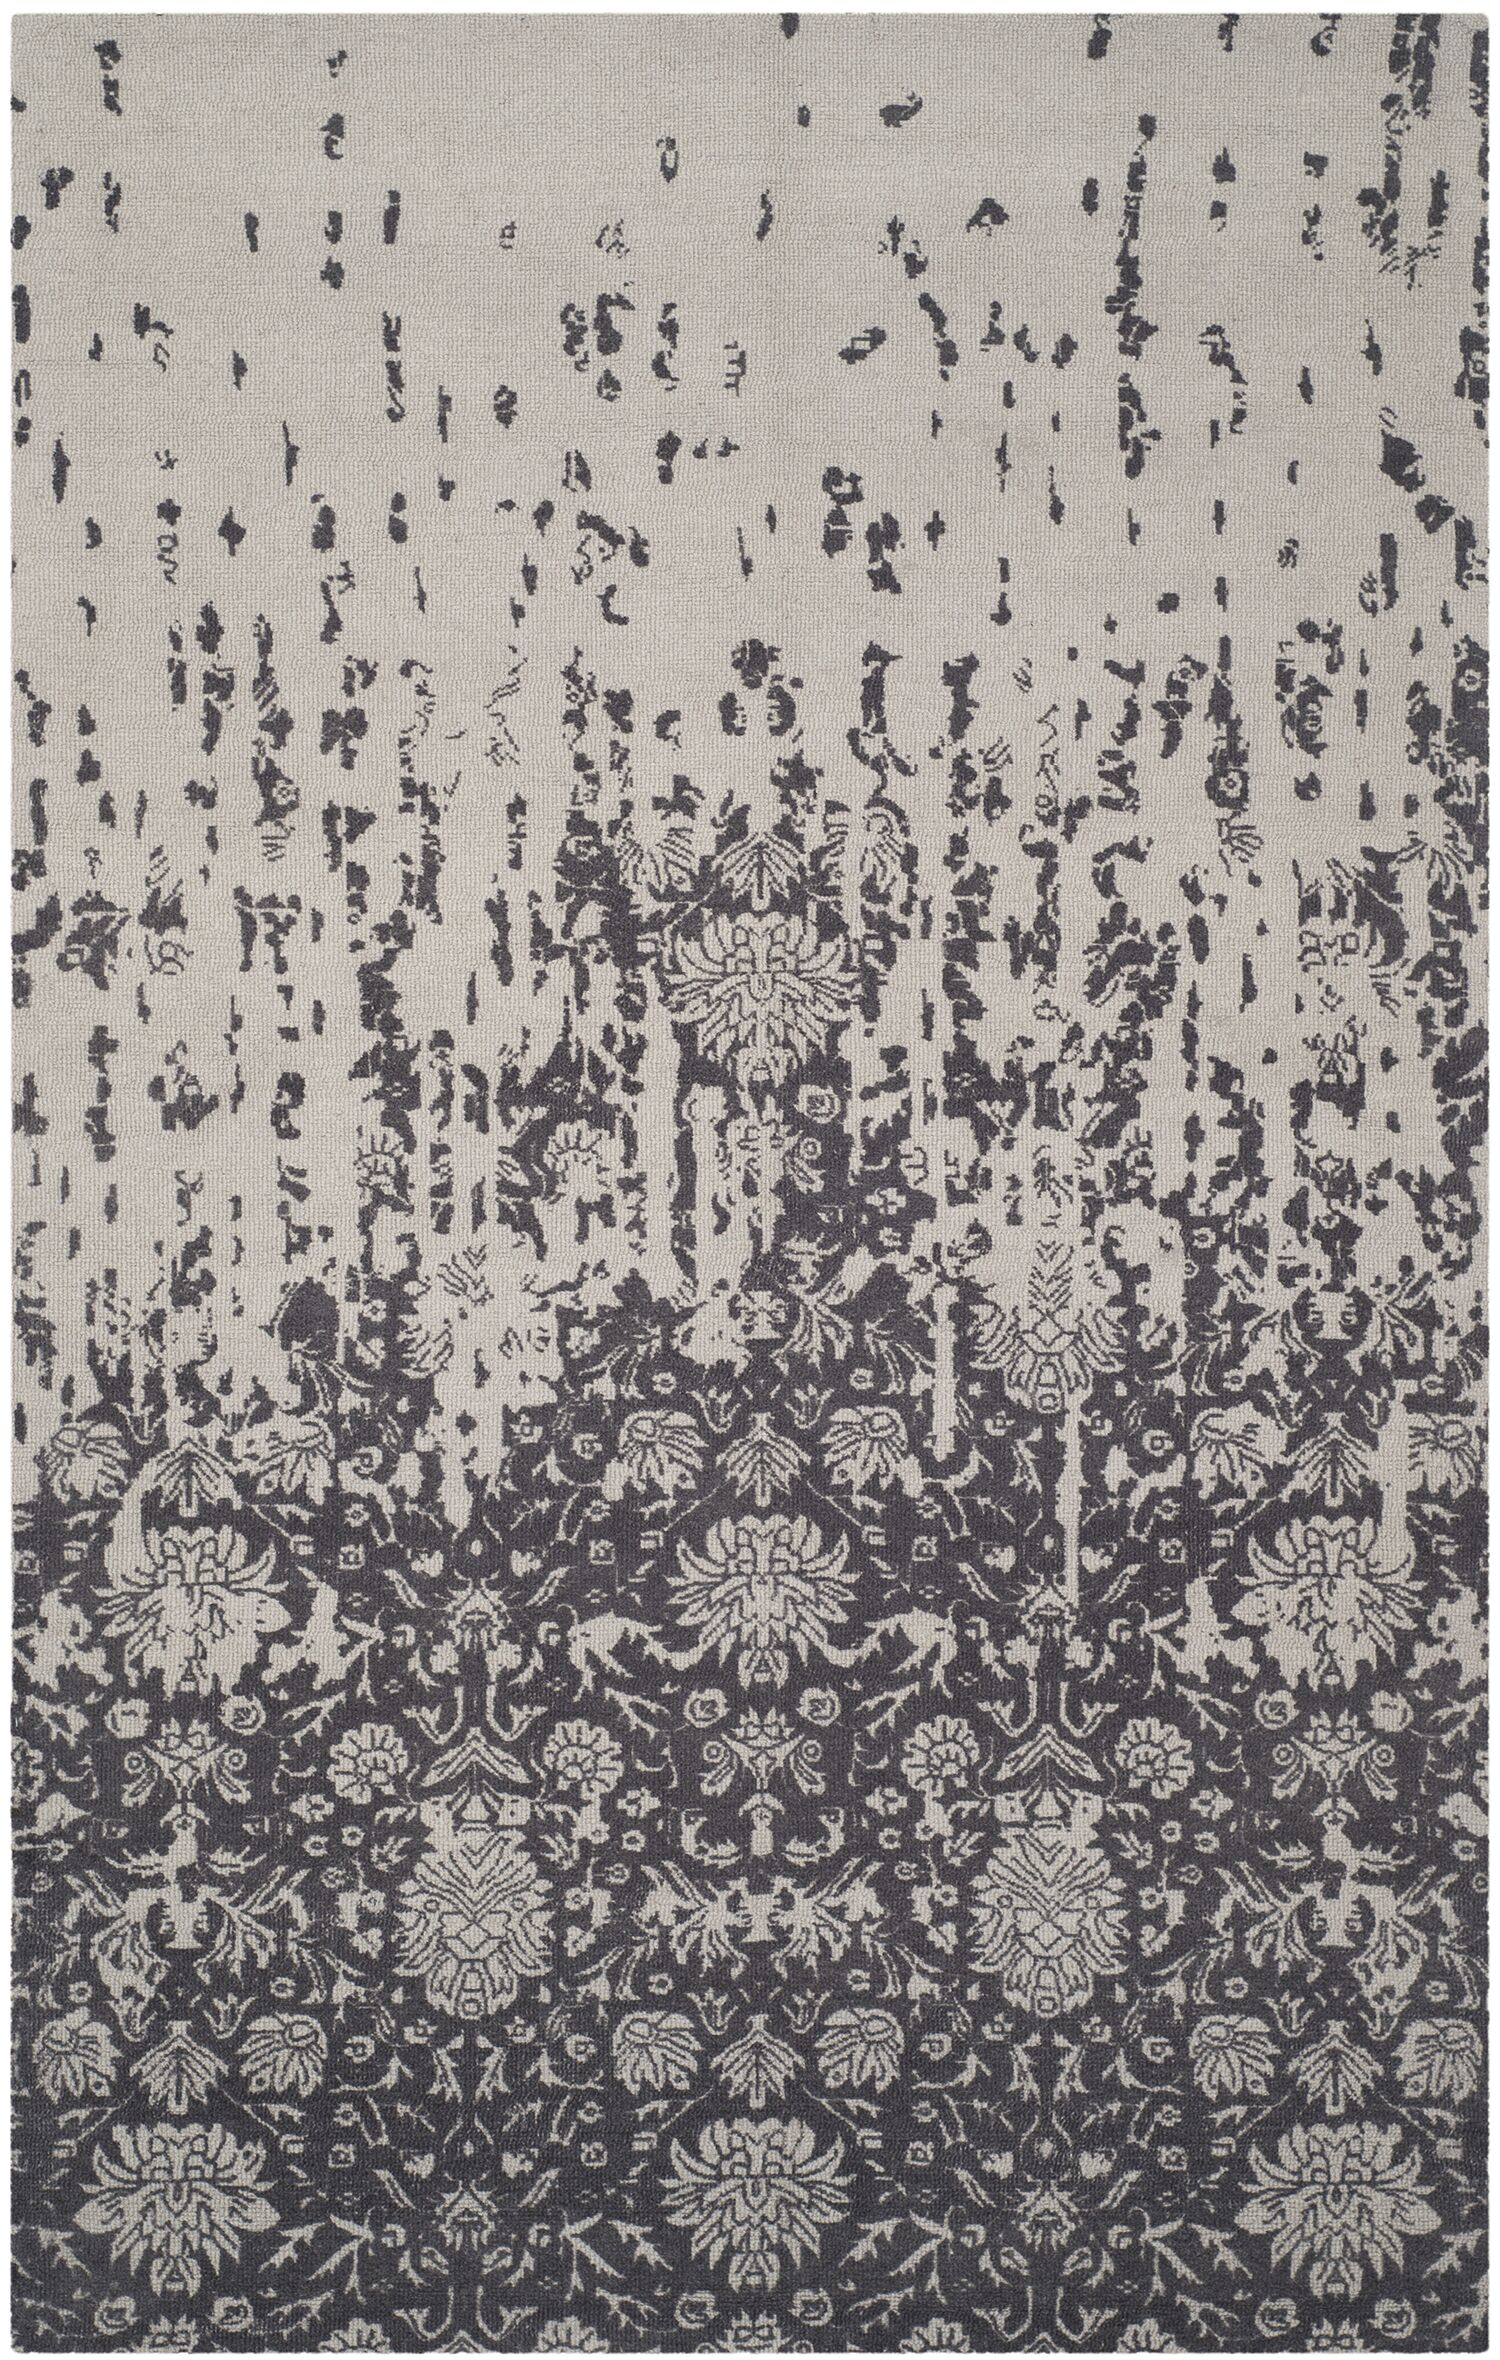 Ellicottville Hand-Tufted Brown/Gray Area Rug Rug Size: Rectangle 5' x 8'